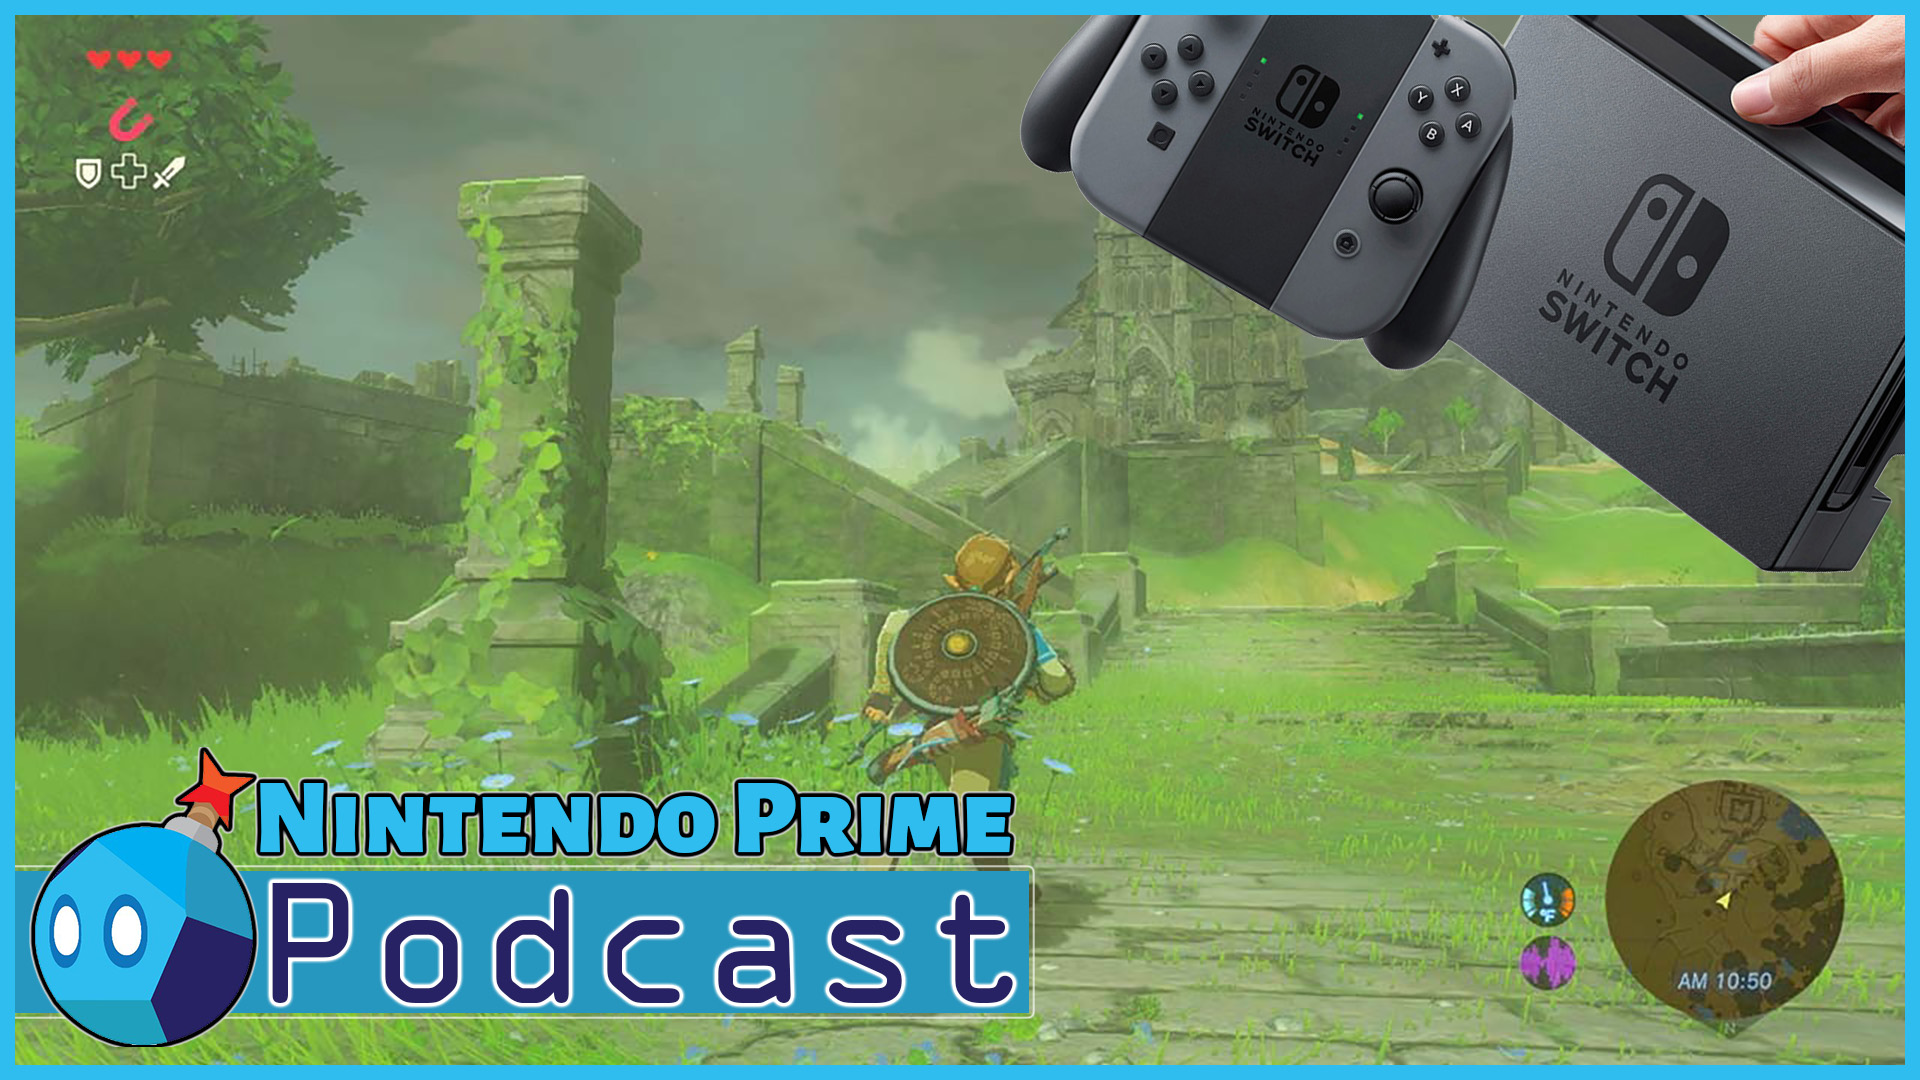 Nintendo Switch Lineup, Concerns, and How it Can Succeed - Nintendo Prime Podcast Ep. 13